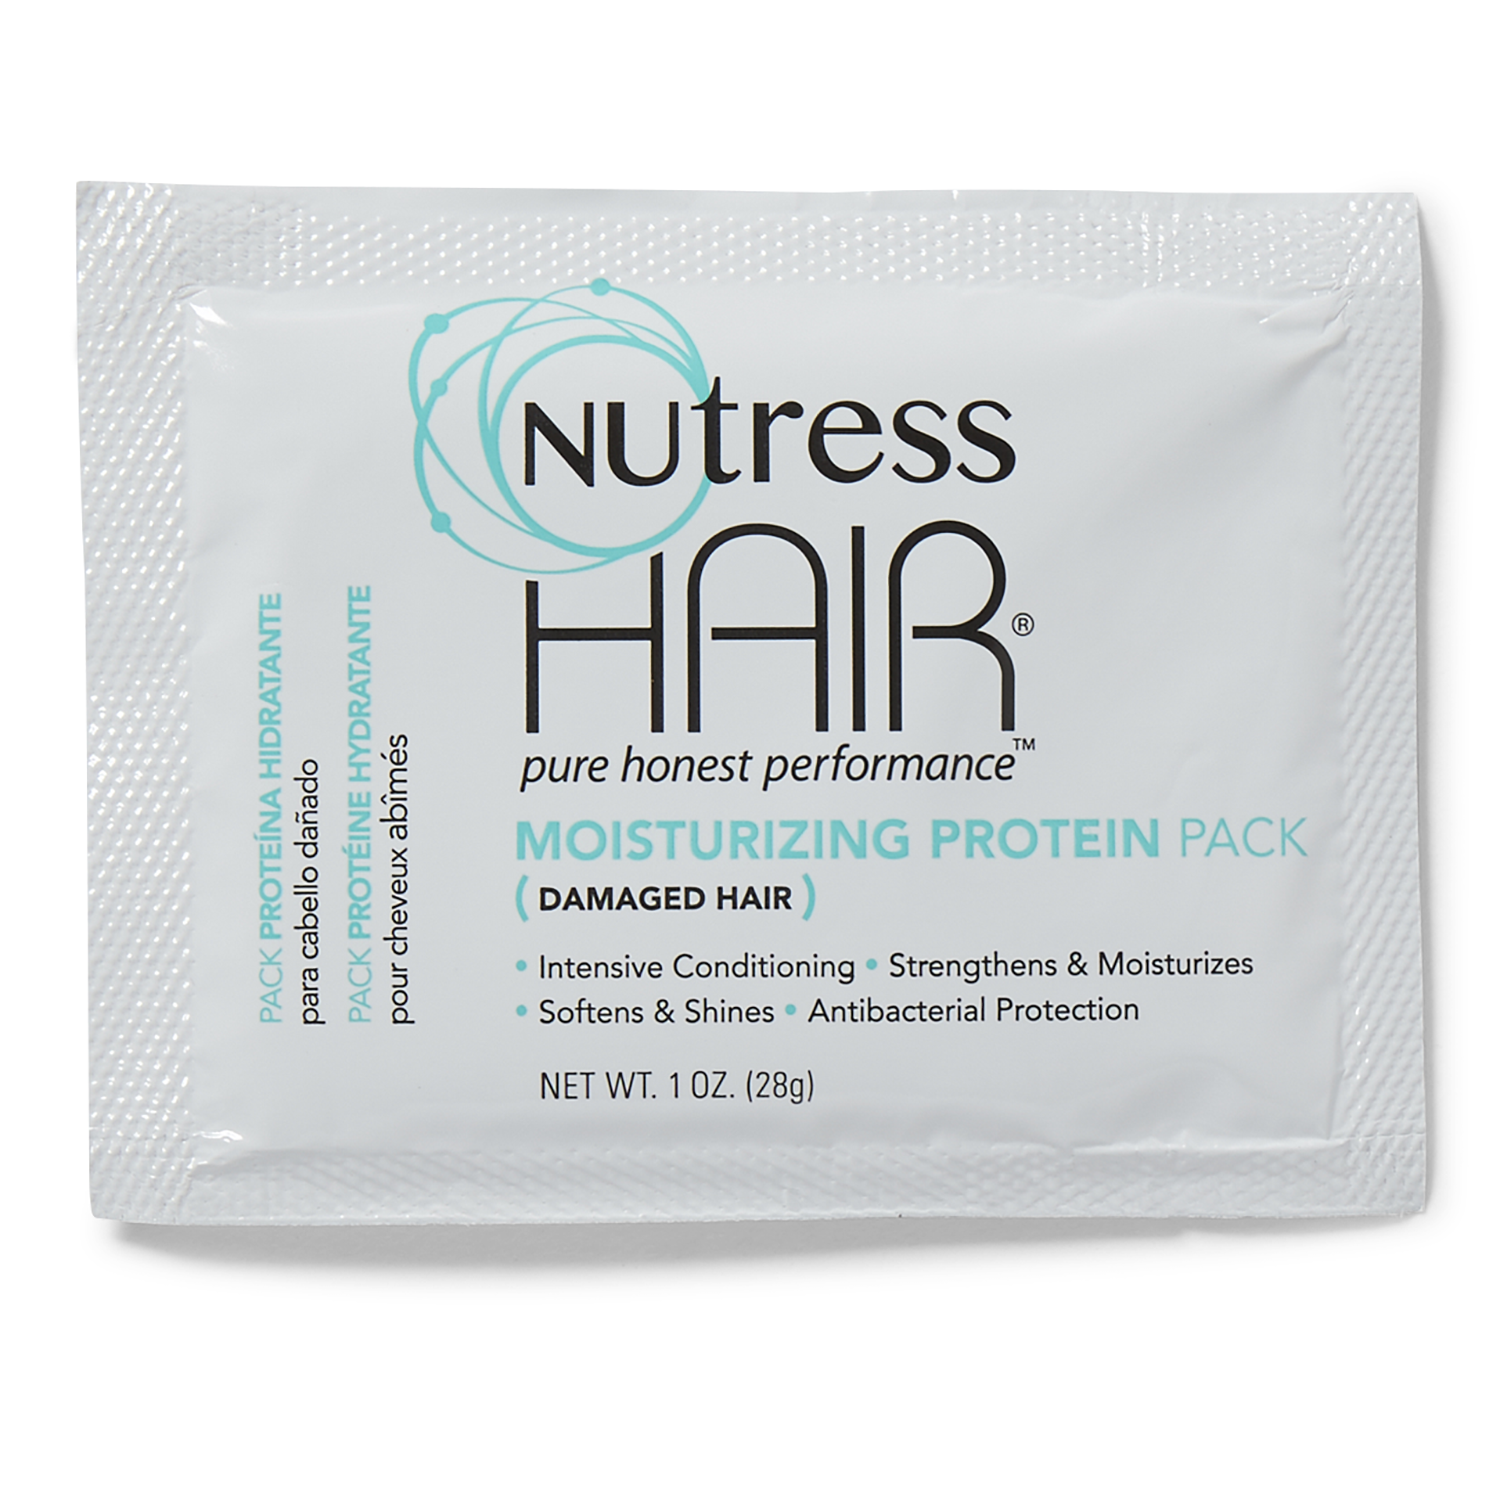 Sally Beauty coupon: Nutress Hair Moisturizing Protein Packette | 1 oz. | Sally Beauty